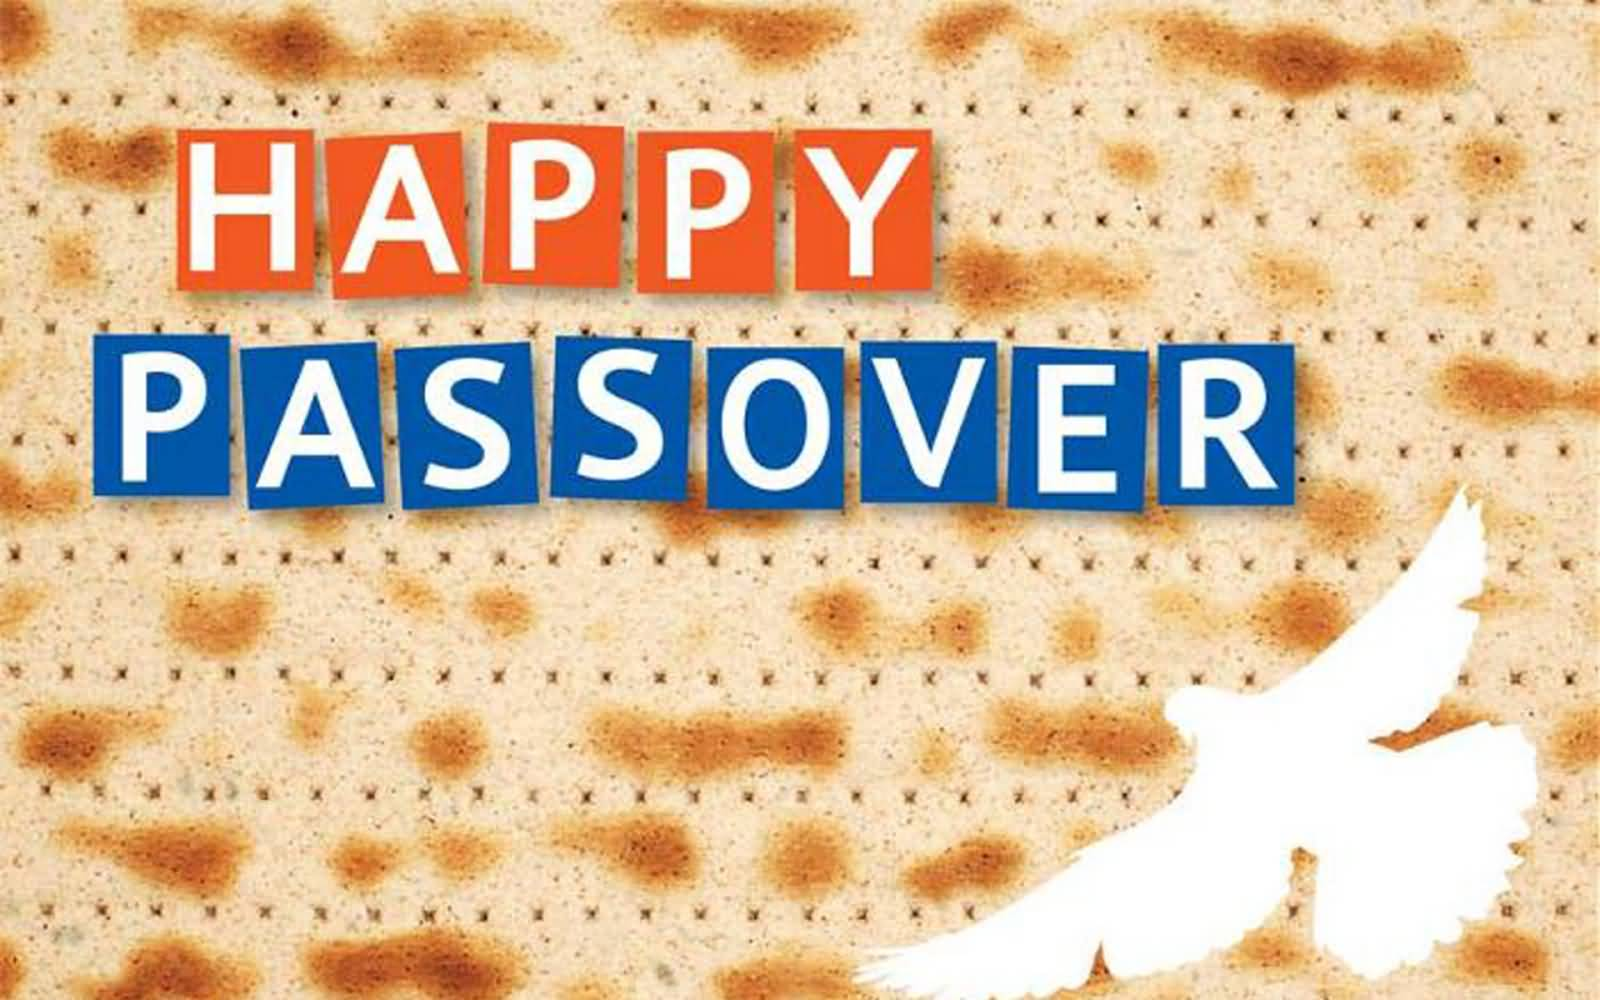 Happy passover wishes m4hsunfo